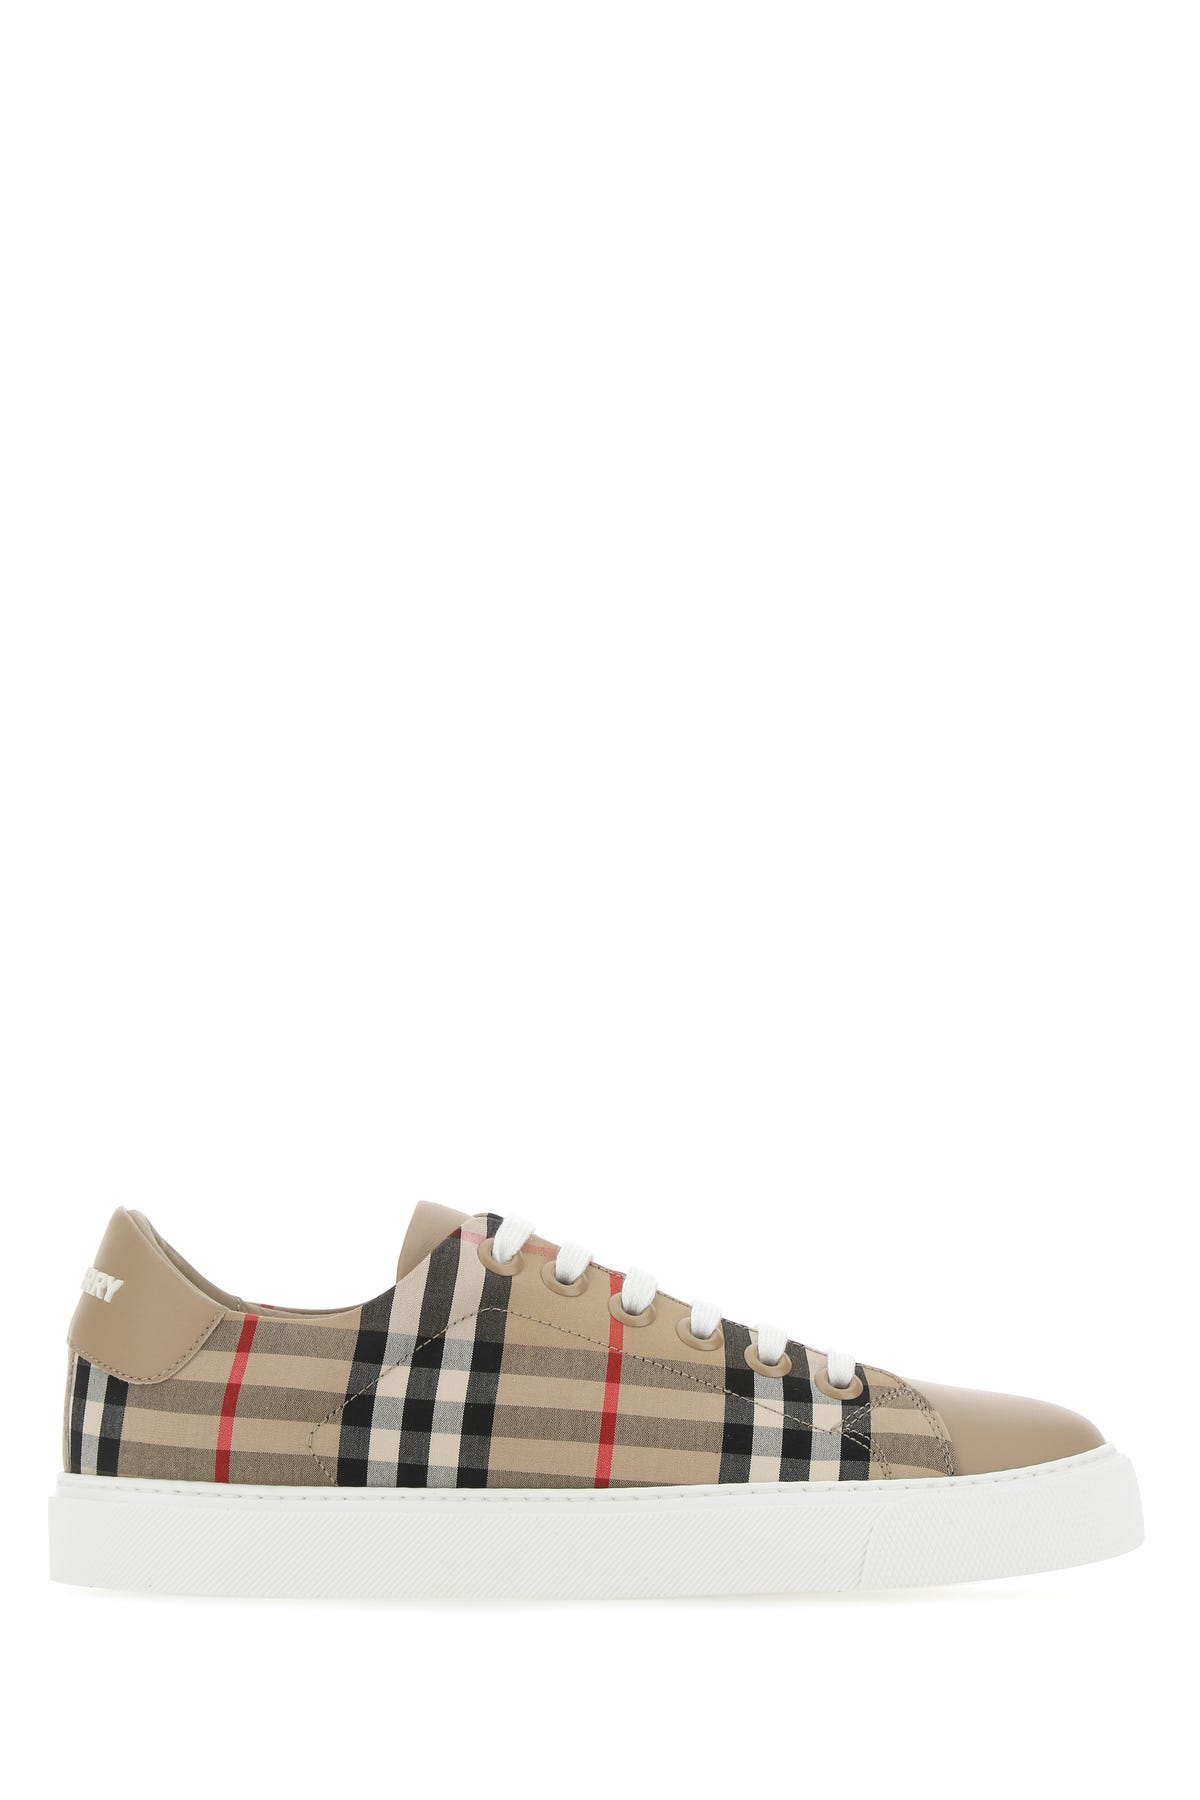 Burberry SNEAKERS-39